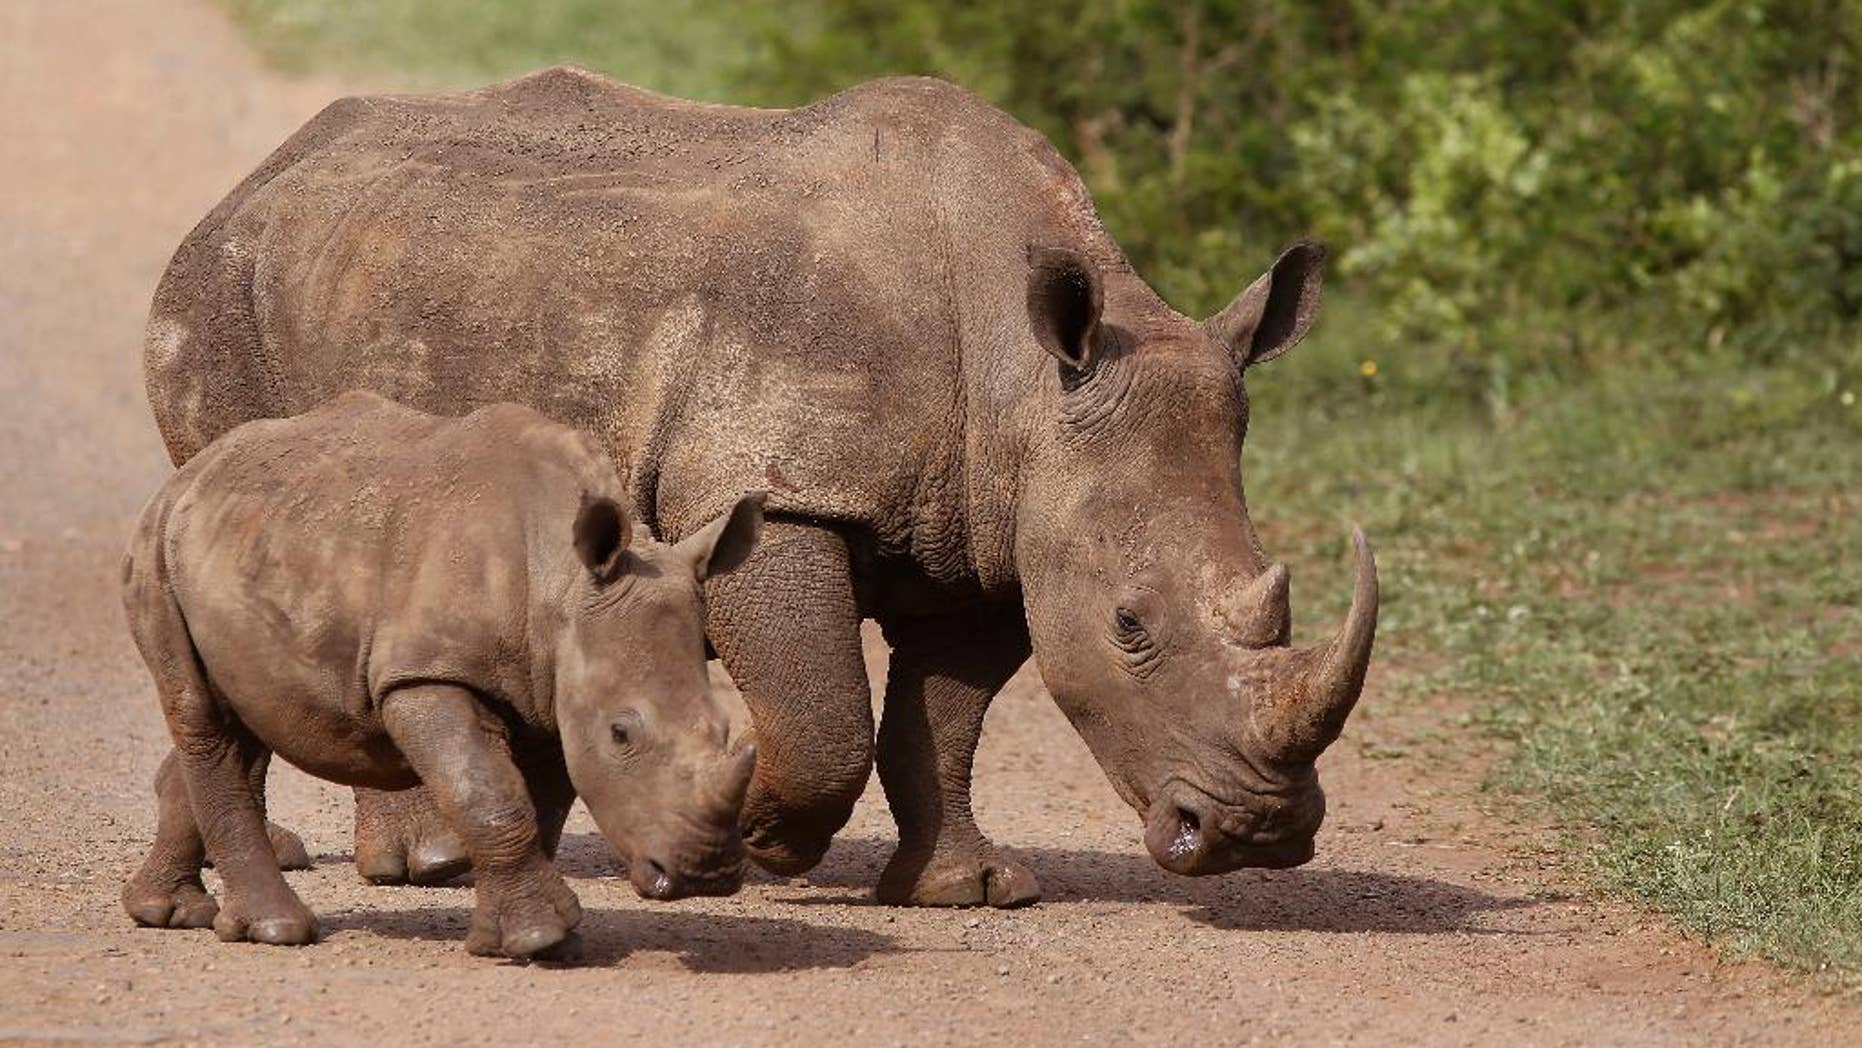 FILE - In this Sunday, Dec. 20, 2015 file photo, rhinos walk in the Hluhluwe-Imfolozi game reserve in South Africa. The African kingdom of Swaziland, which has 73 rhinos, said Monday that it could use funds from the sale of its stockpile of 330 kilograms (727 pounds) of rhino horn to pay for wildlife protection. Delegates, however, rejected the Swazi proposal by a vote of 100 to 26, with 17 abstentions. (AP Photo/Schalk van Zuydam, File)